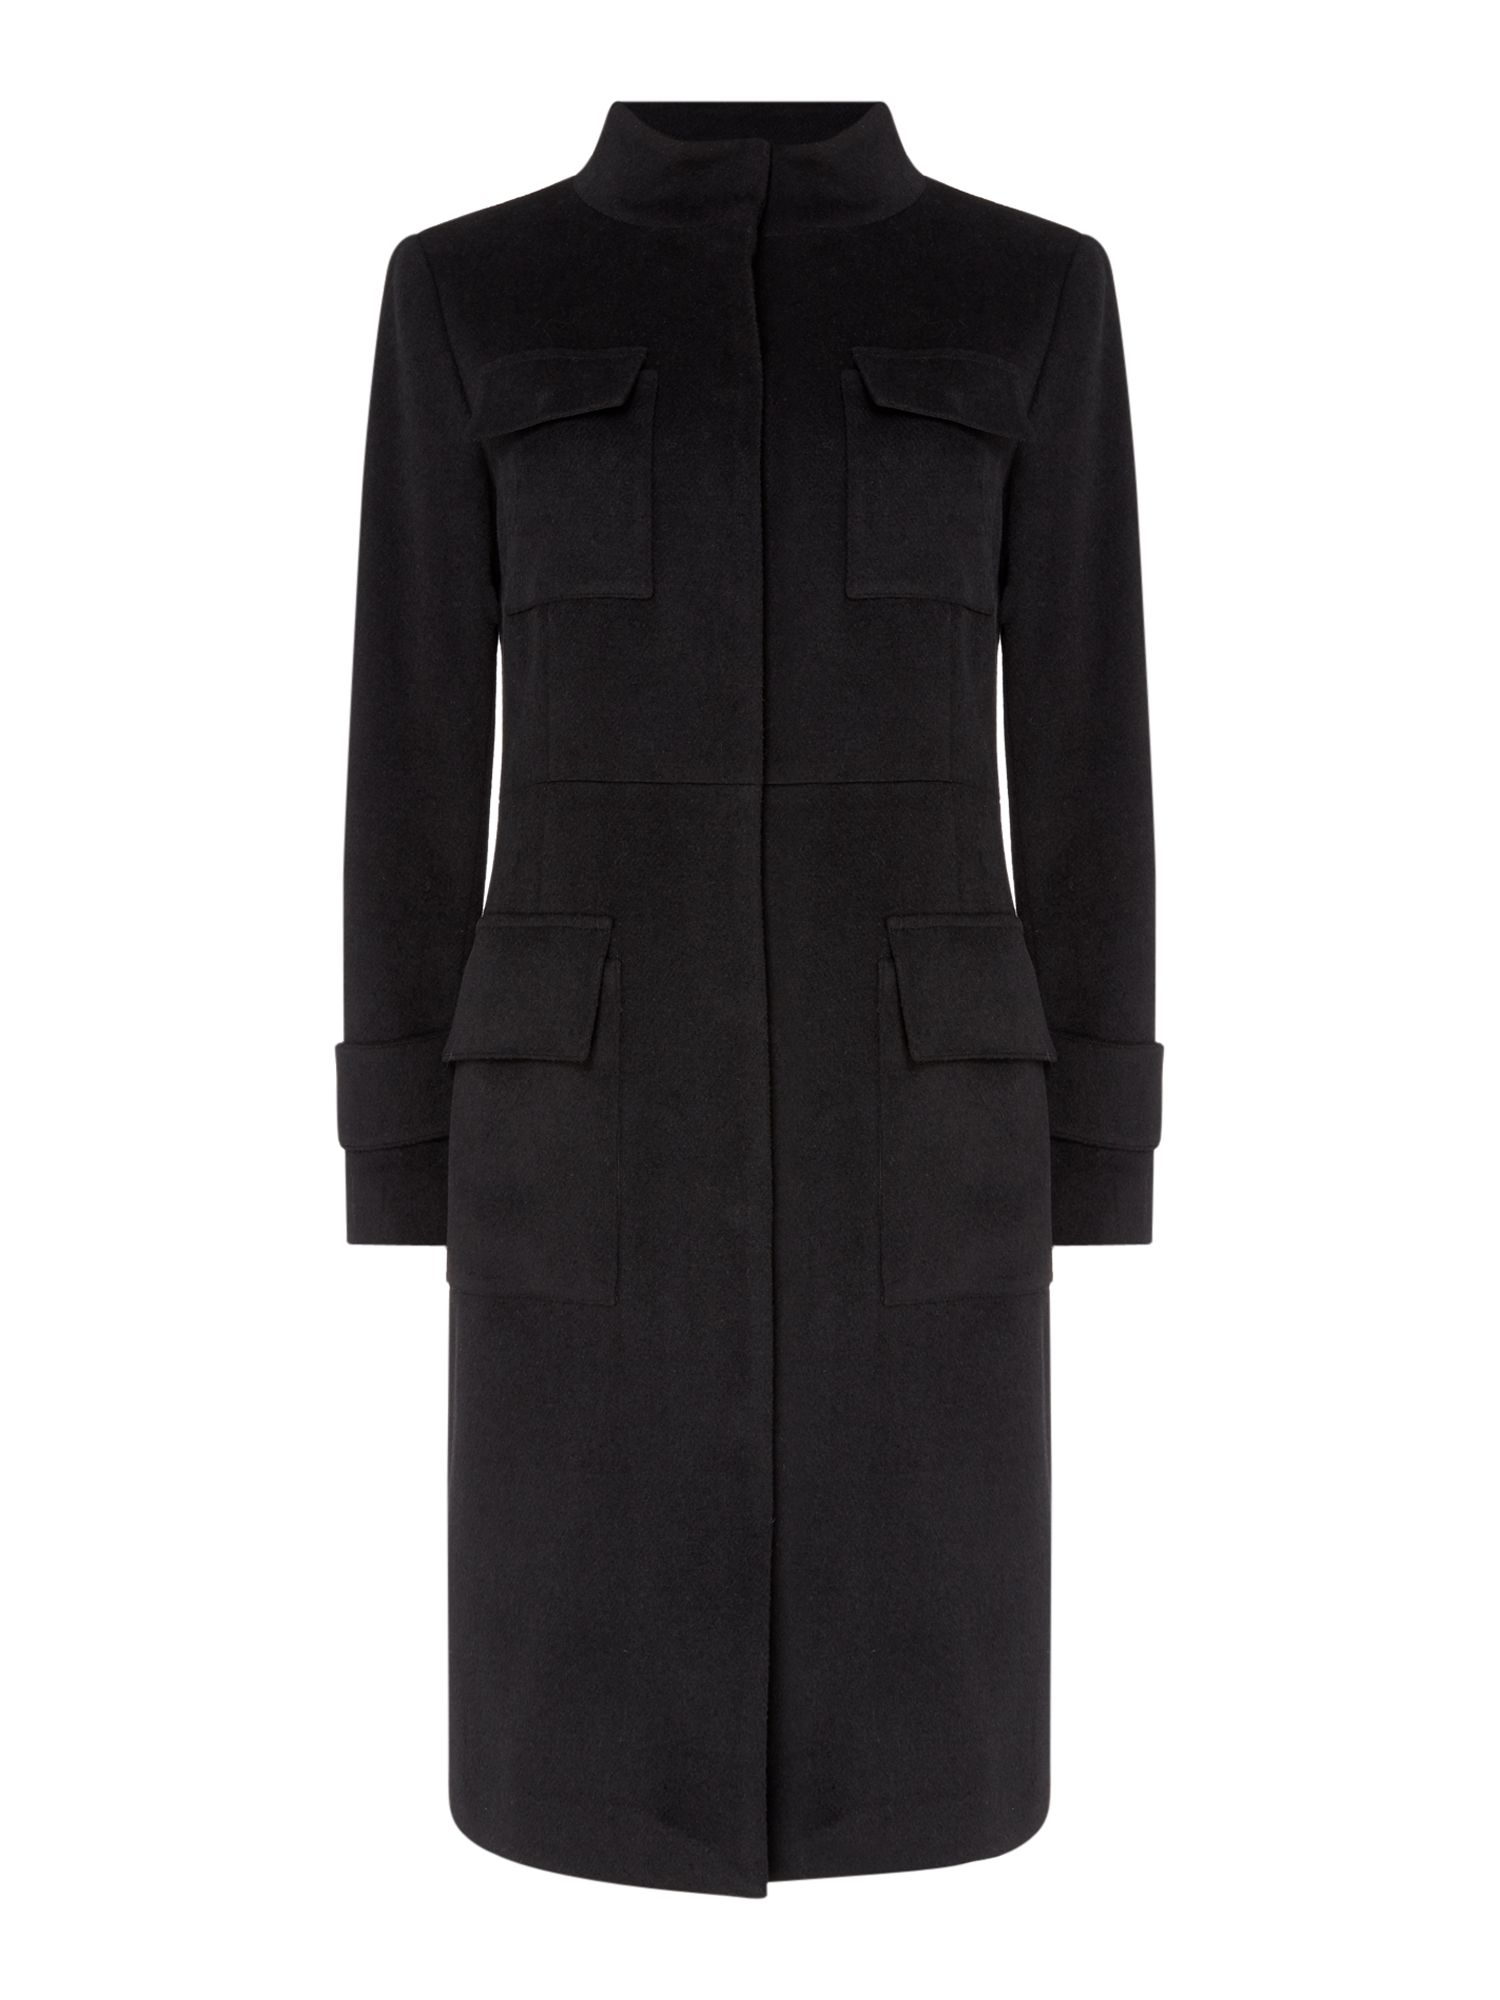 Linea Clara military coat, Black